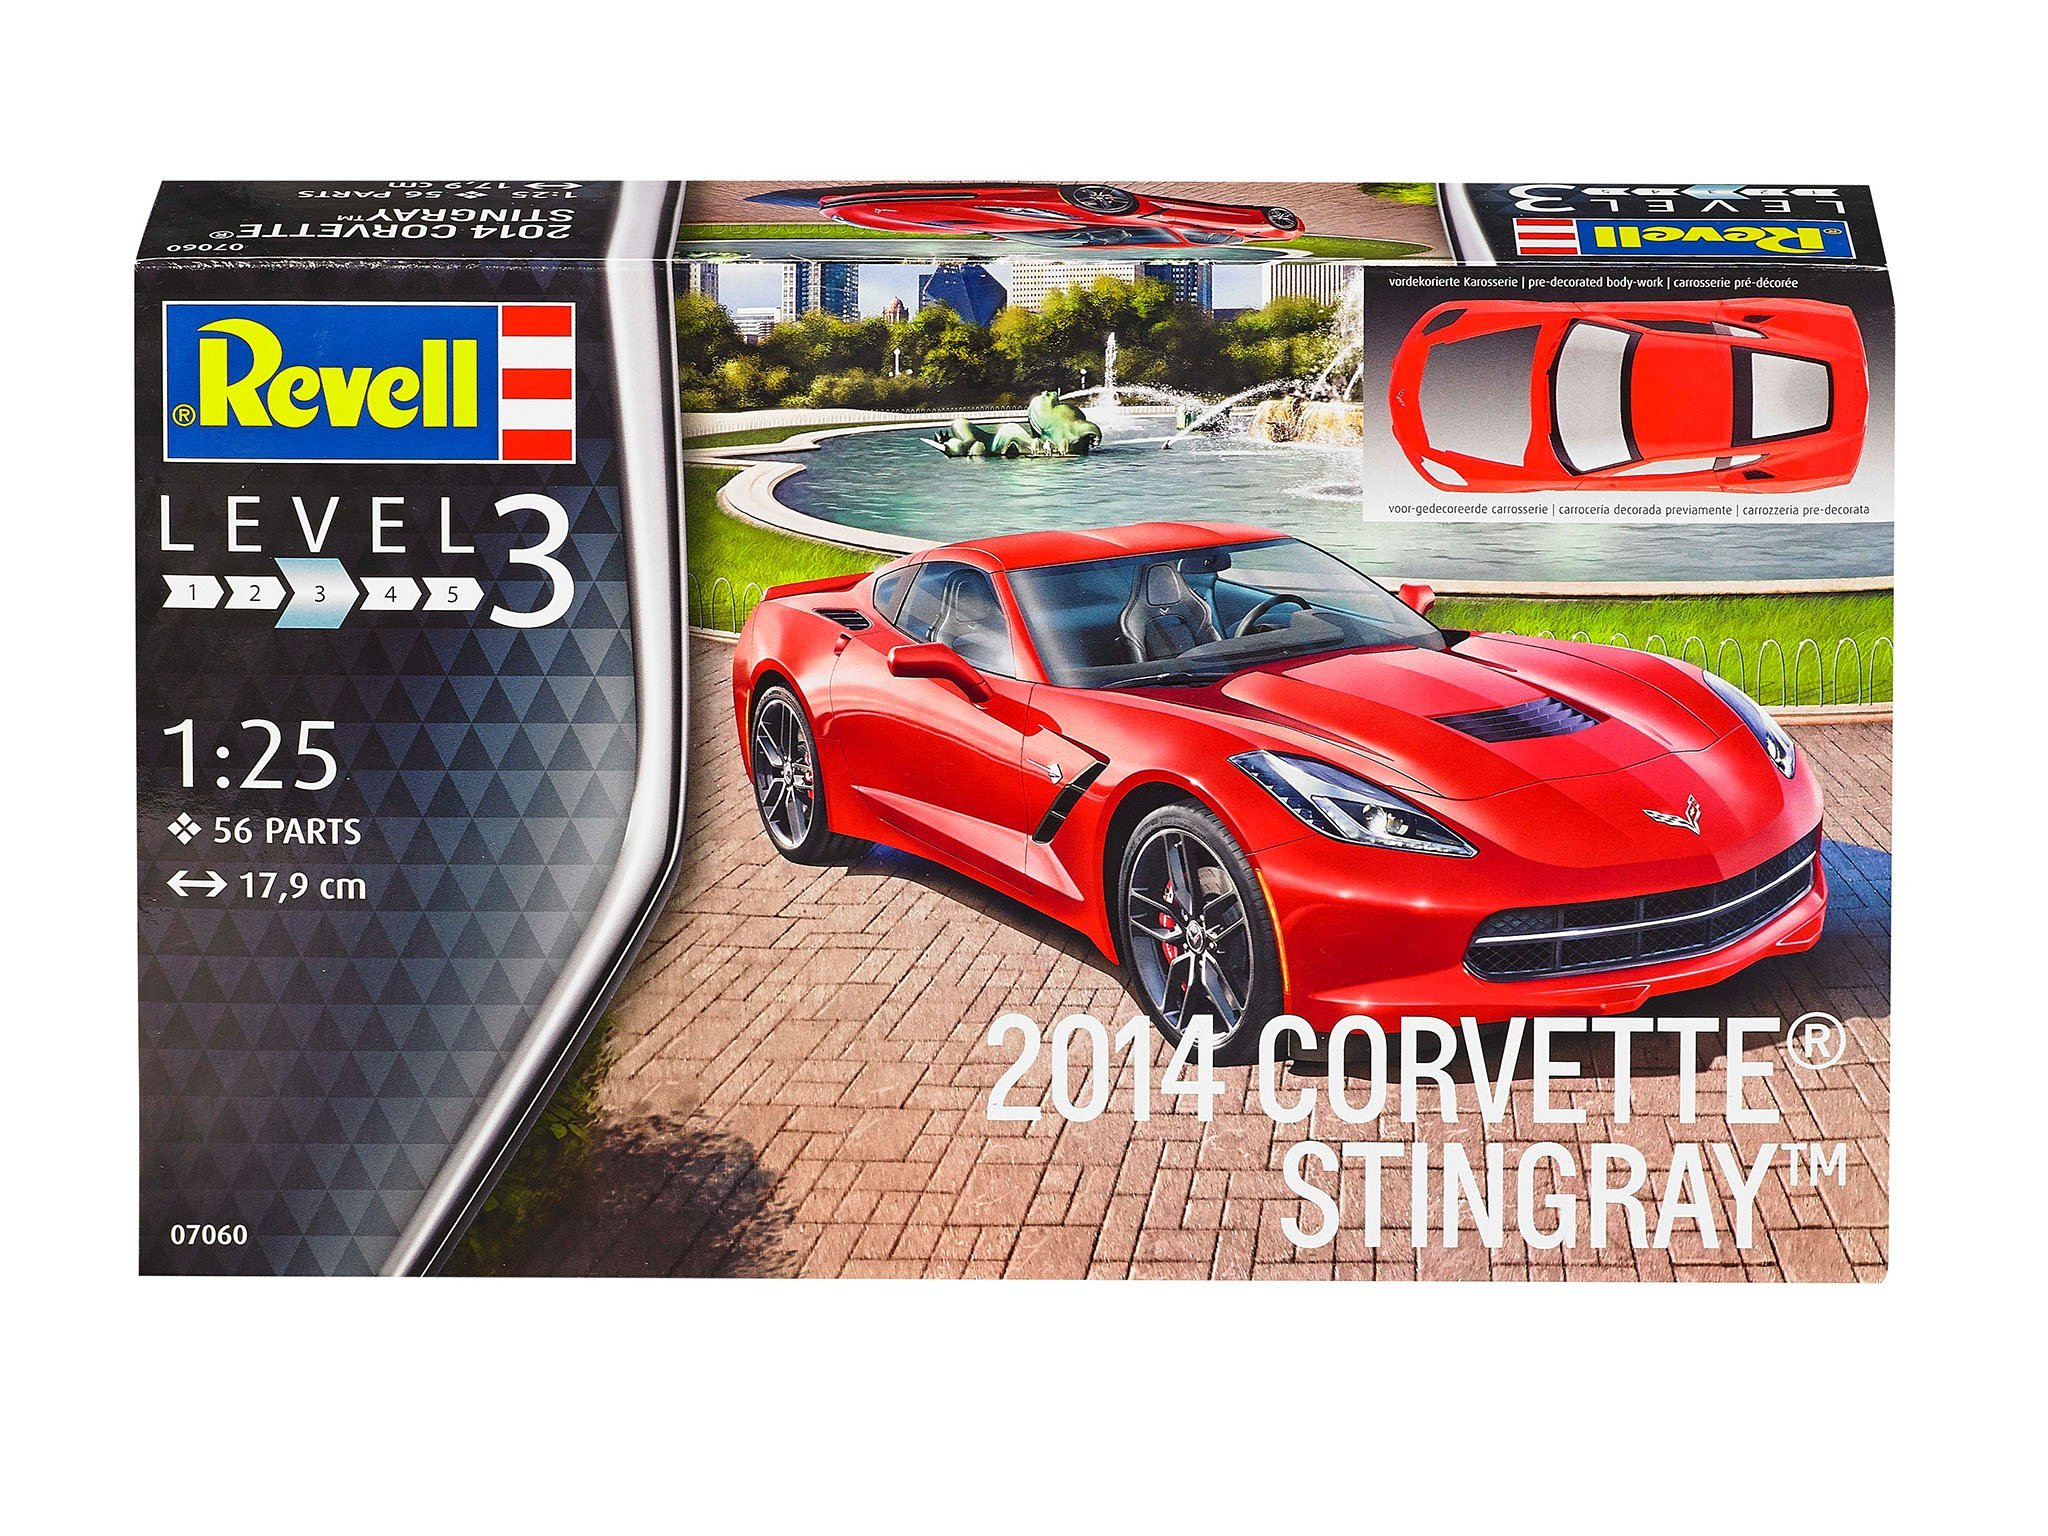 Revell 2014 Corvette Stingray (1:25) Skill 3 - 07060